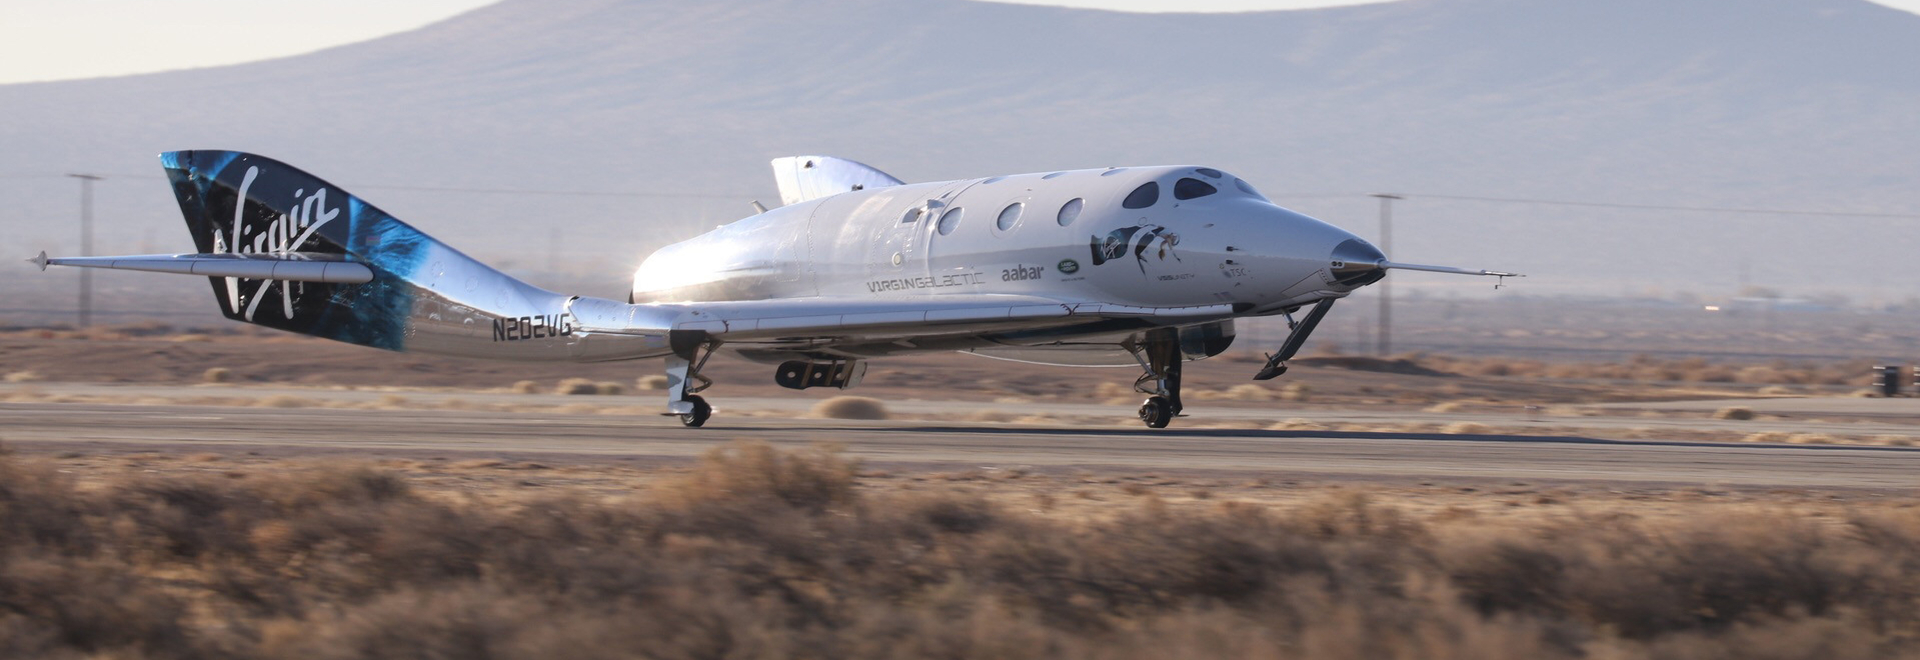 Virgin Galactic secures FAA's approval to fly customers to space